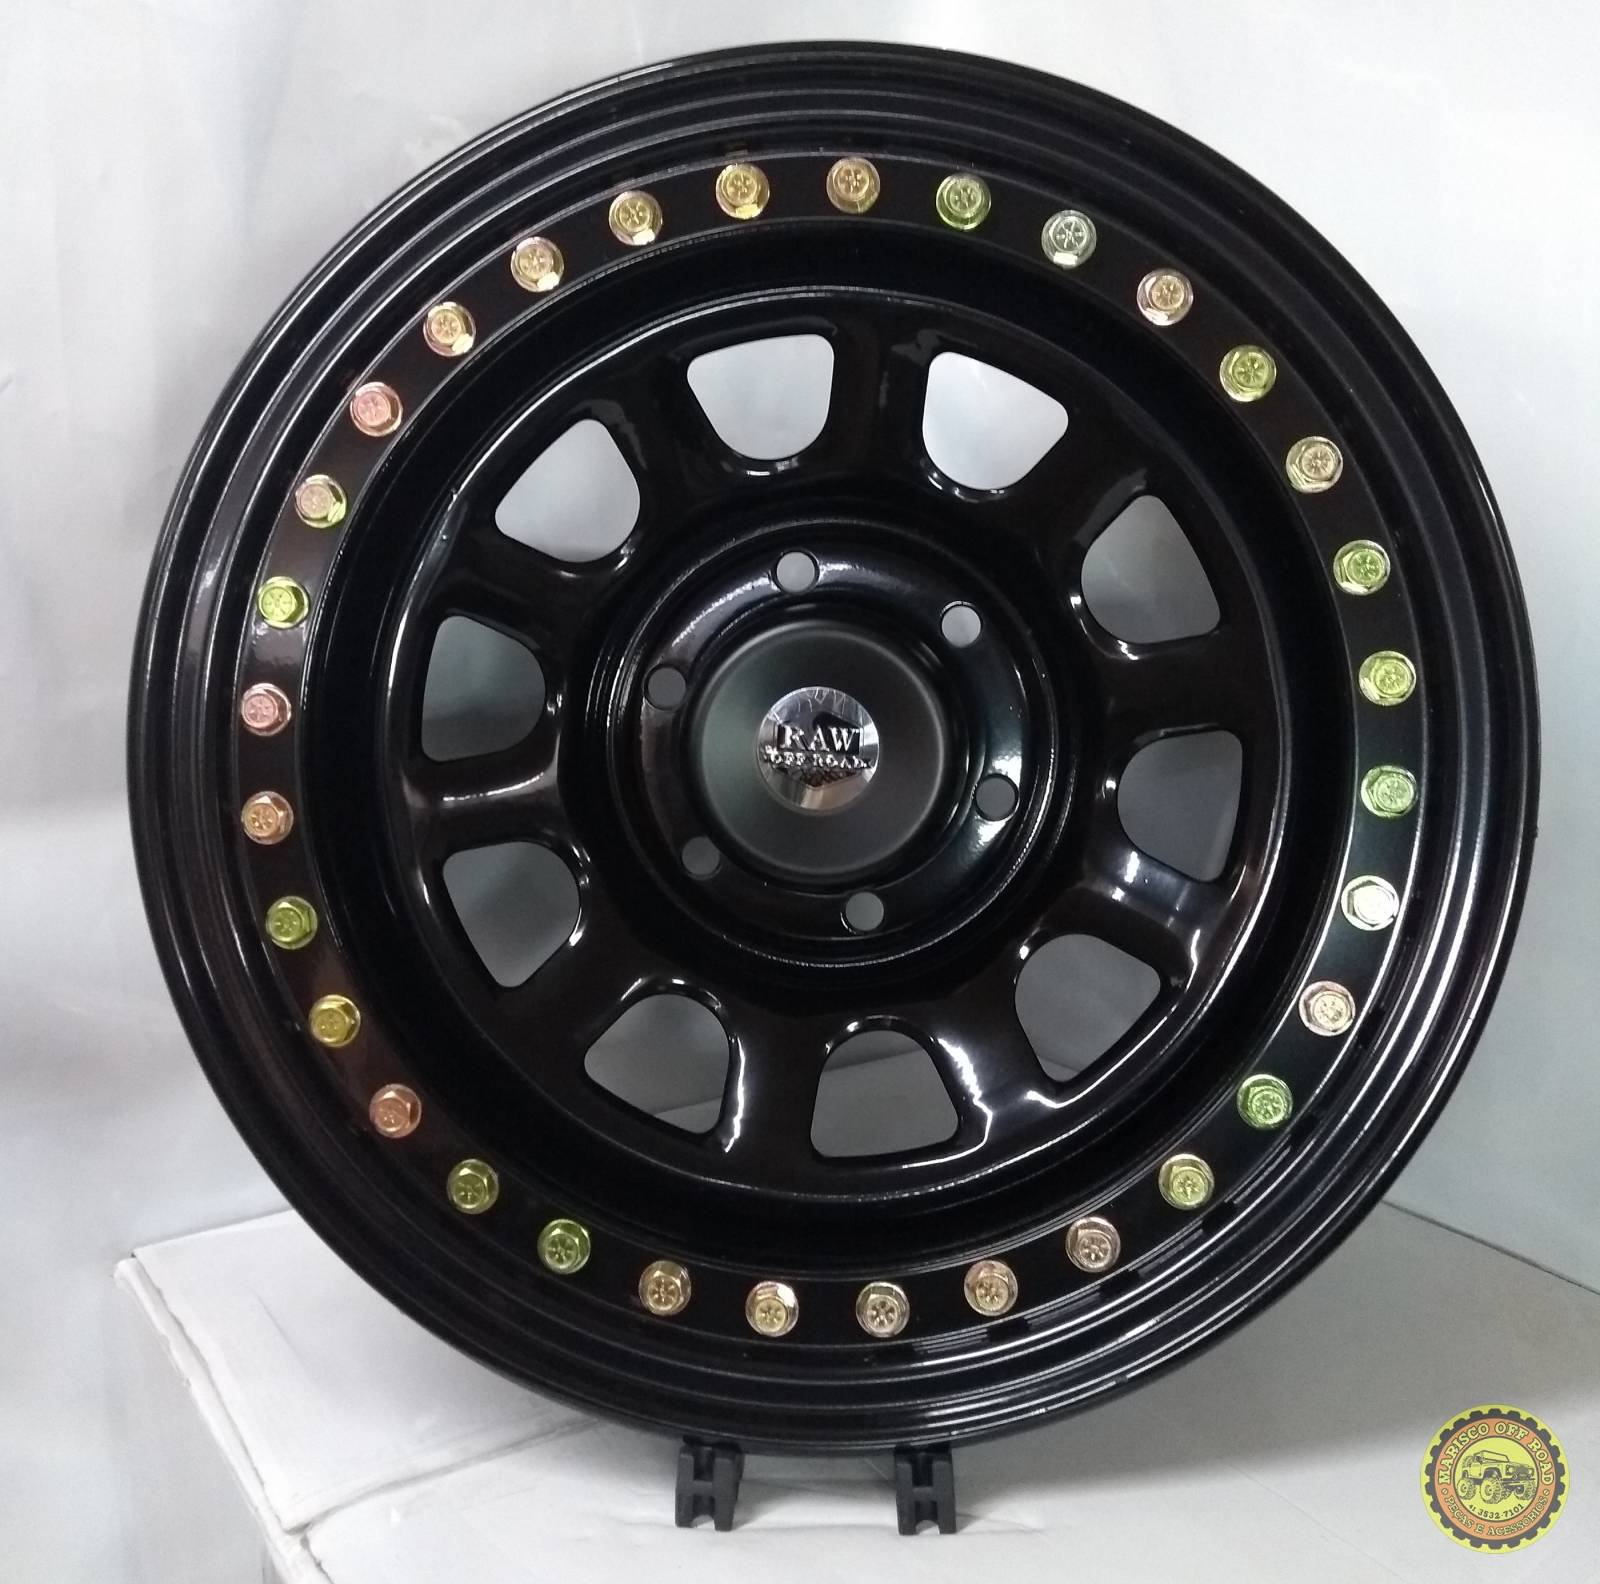 Roda 16x8 BEAD LOCK RAW DAYTONA,  6X139,7, Off Set -25 TROLLER - Marisco Off Road